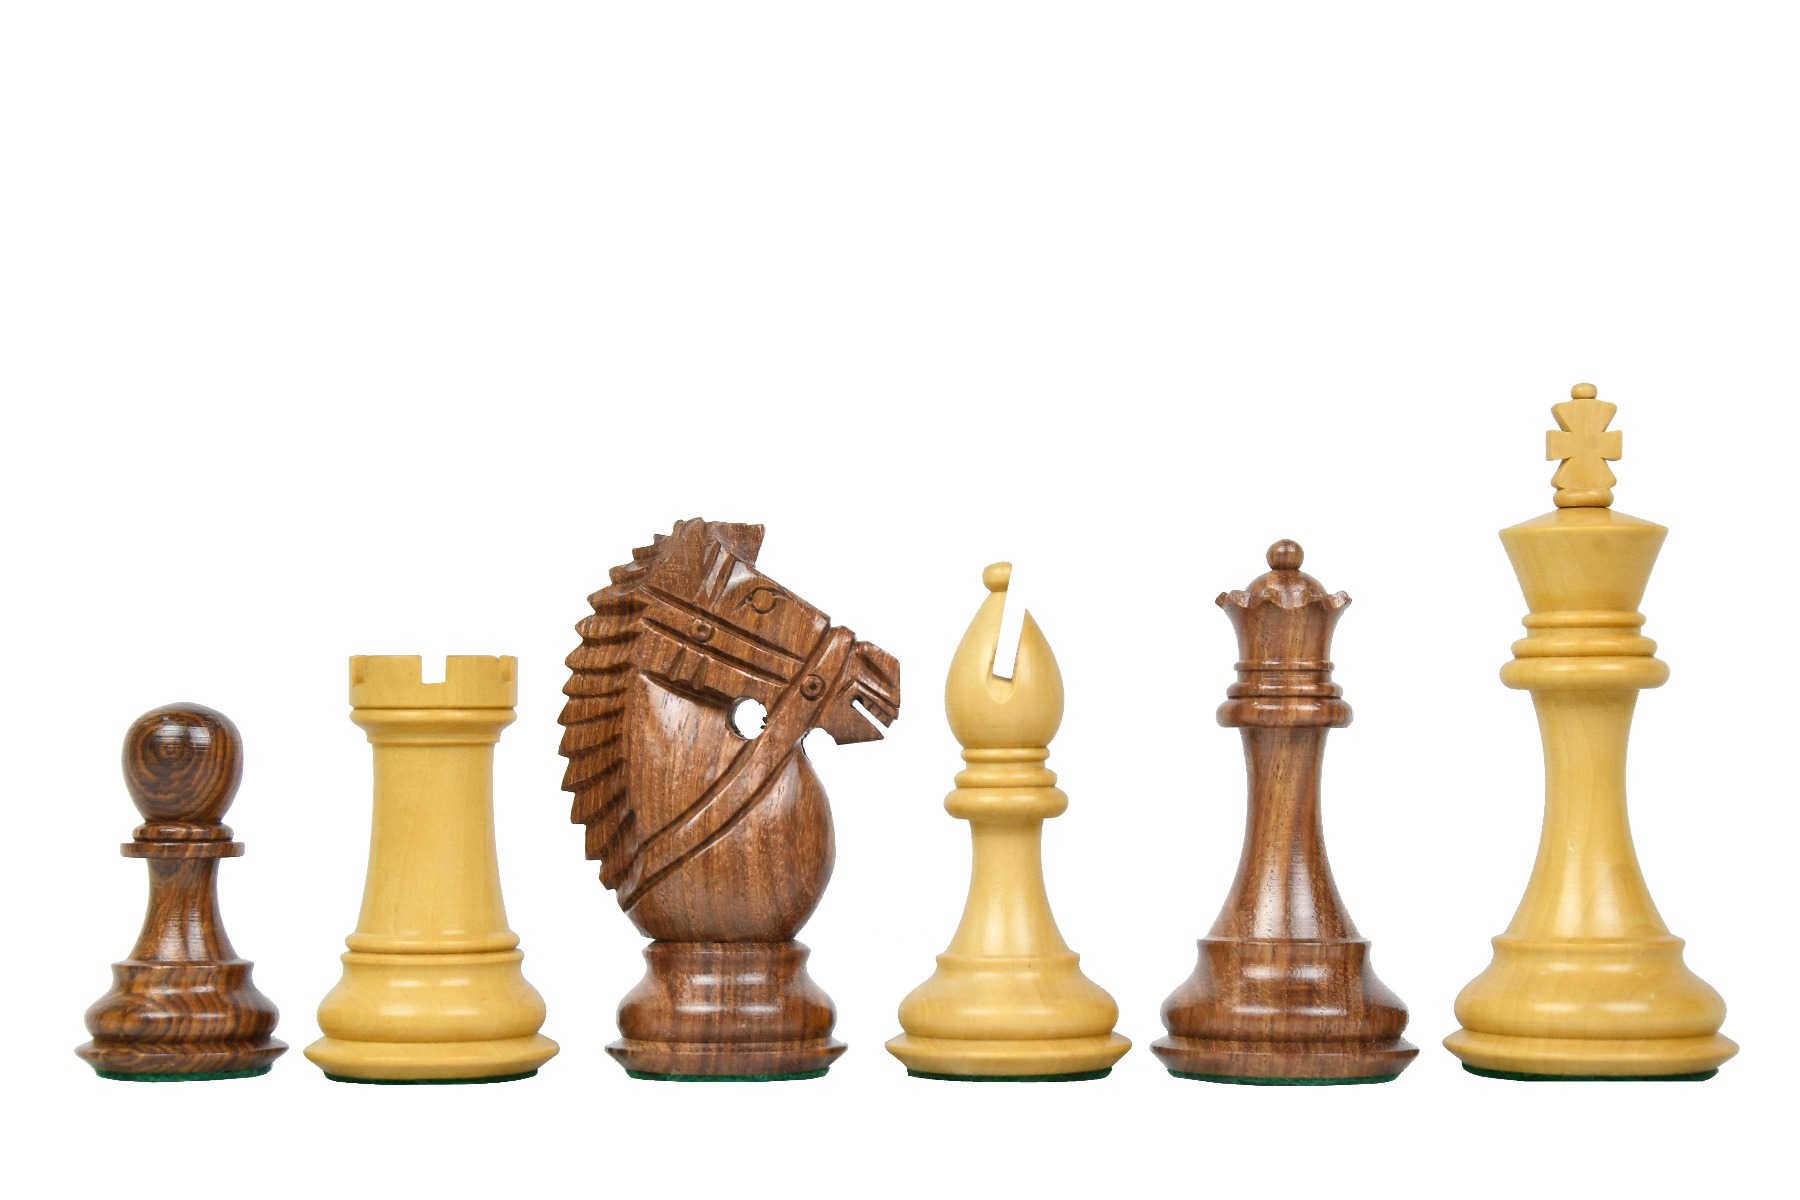 """Combo of The Bridle Knight Series Wooden Chess Pieces in Sheesham & Box Wood - 4.0"""" King with Wooden Chess Board"""